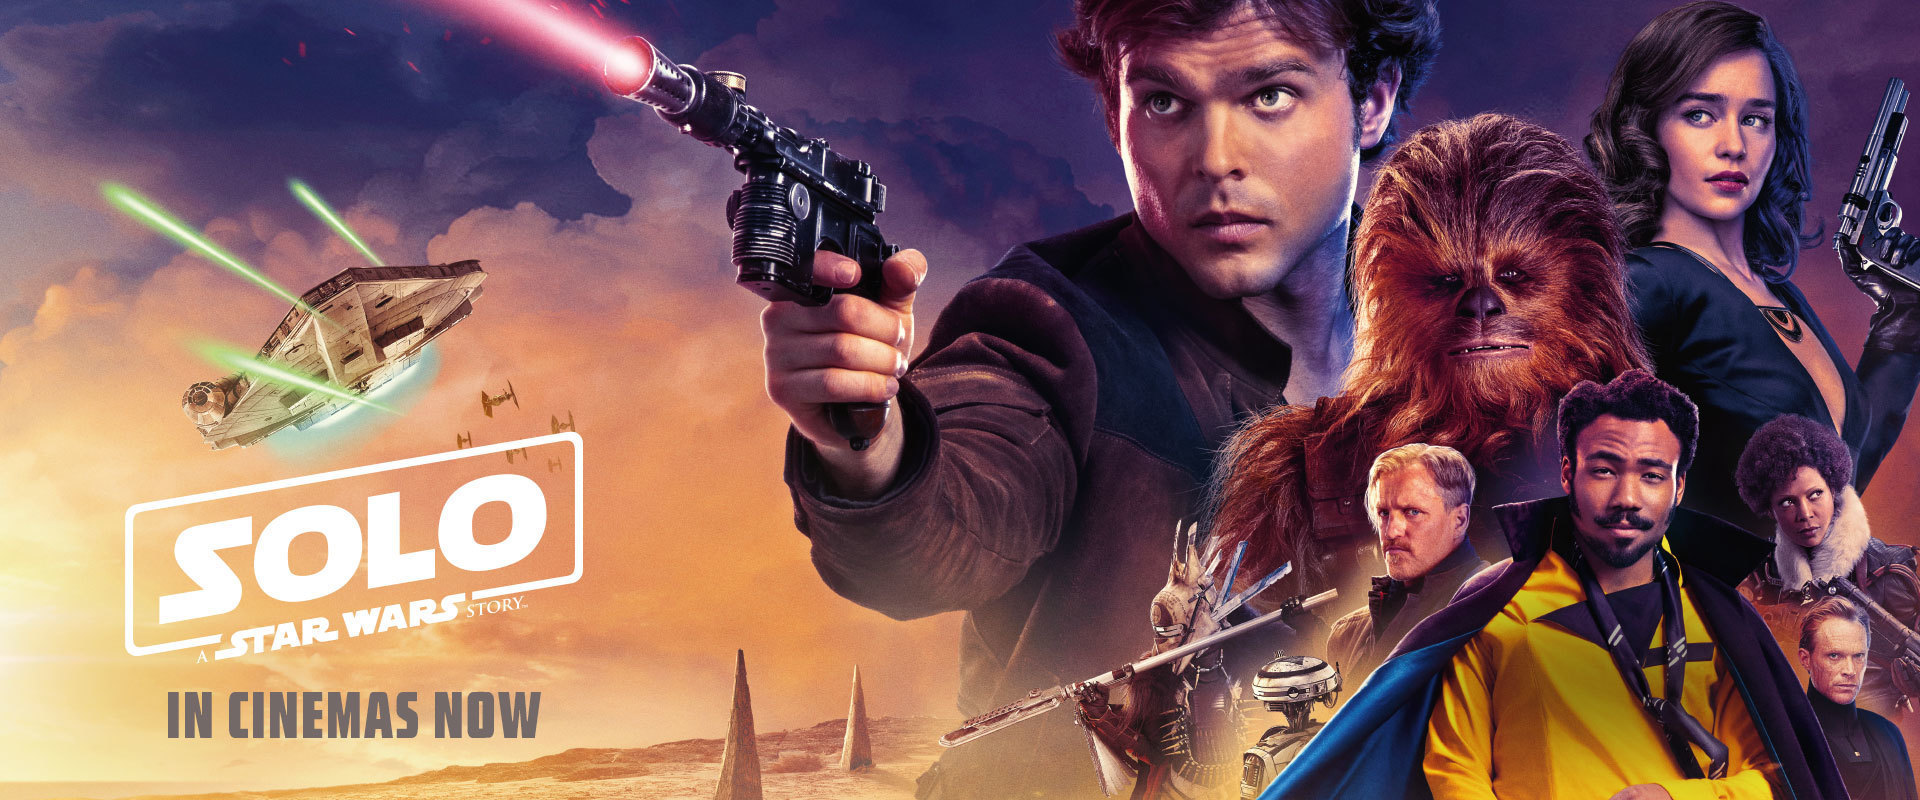 Solo: A Star Wars Story | Movies | Homepage | Star Wars